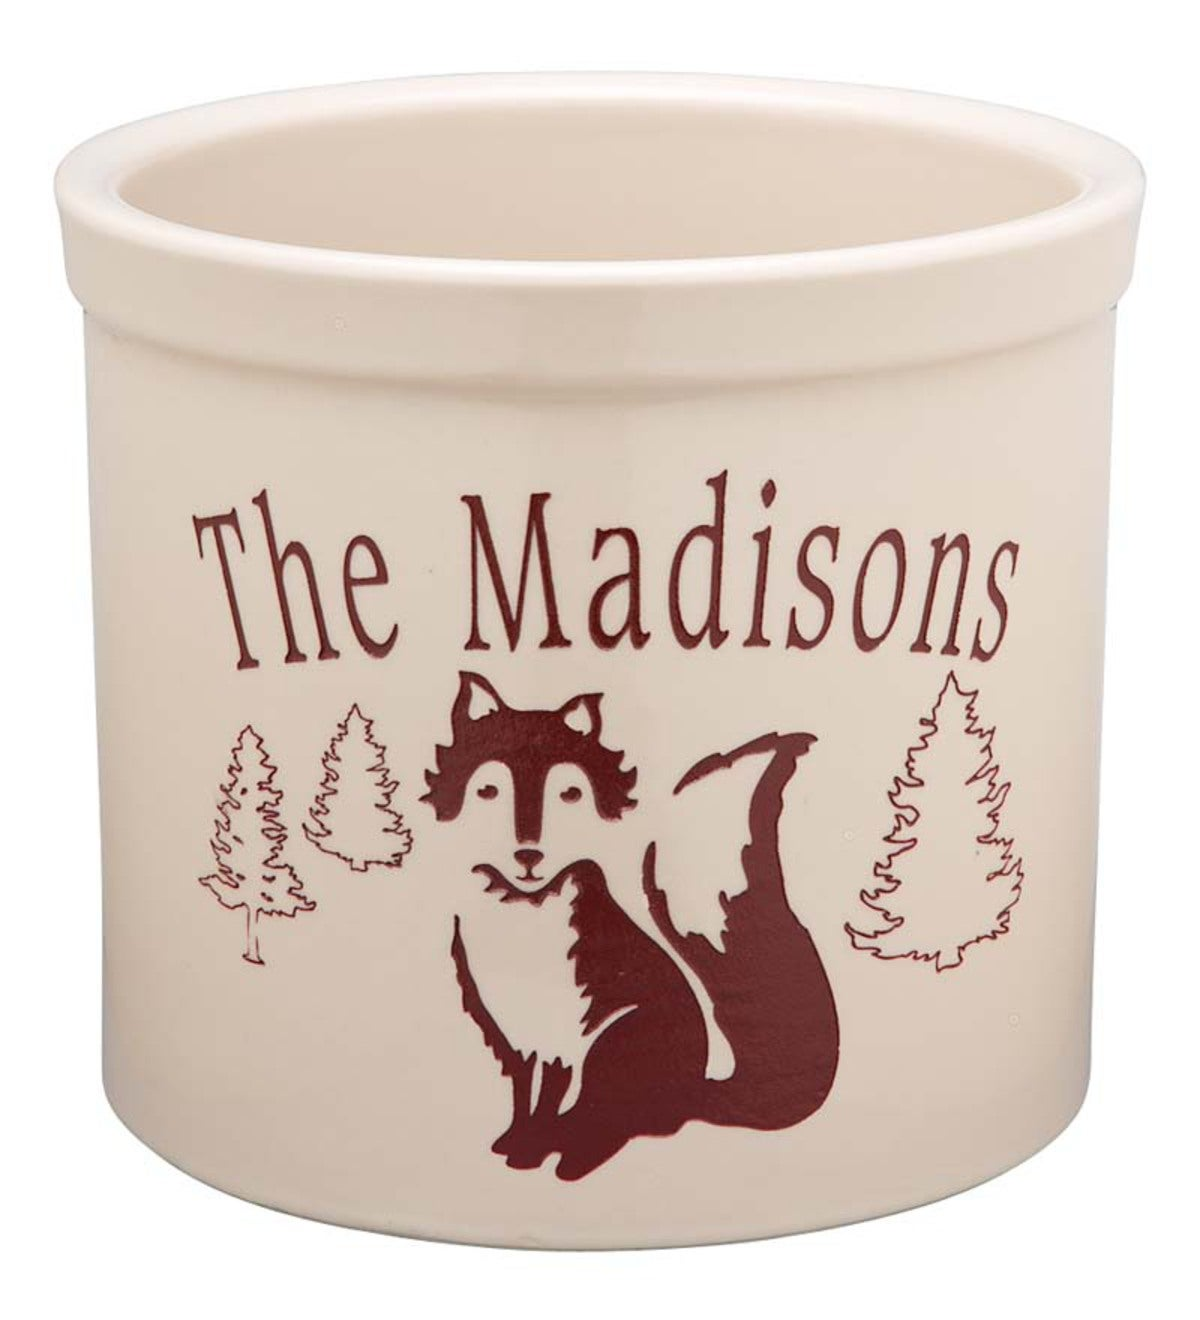 USA-Made Handcrafted Personalized Ceramic Fox Crock